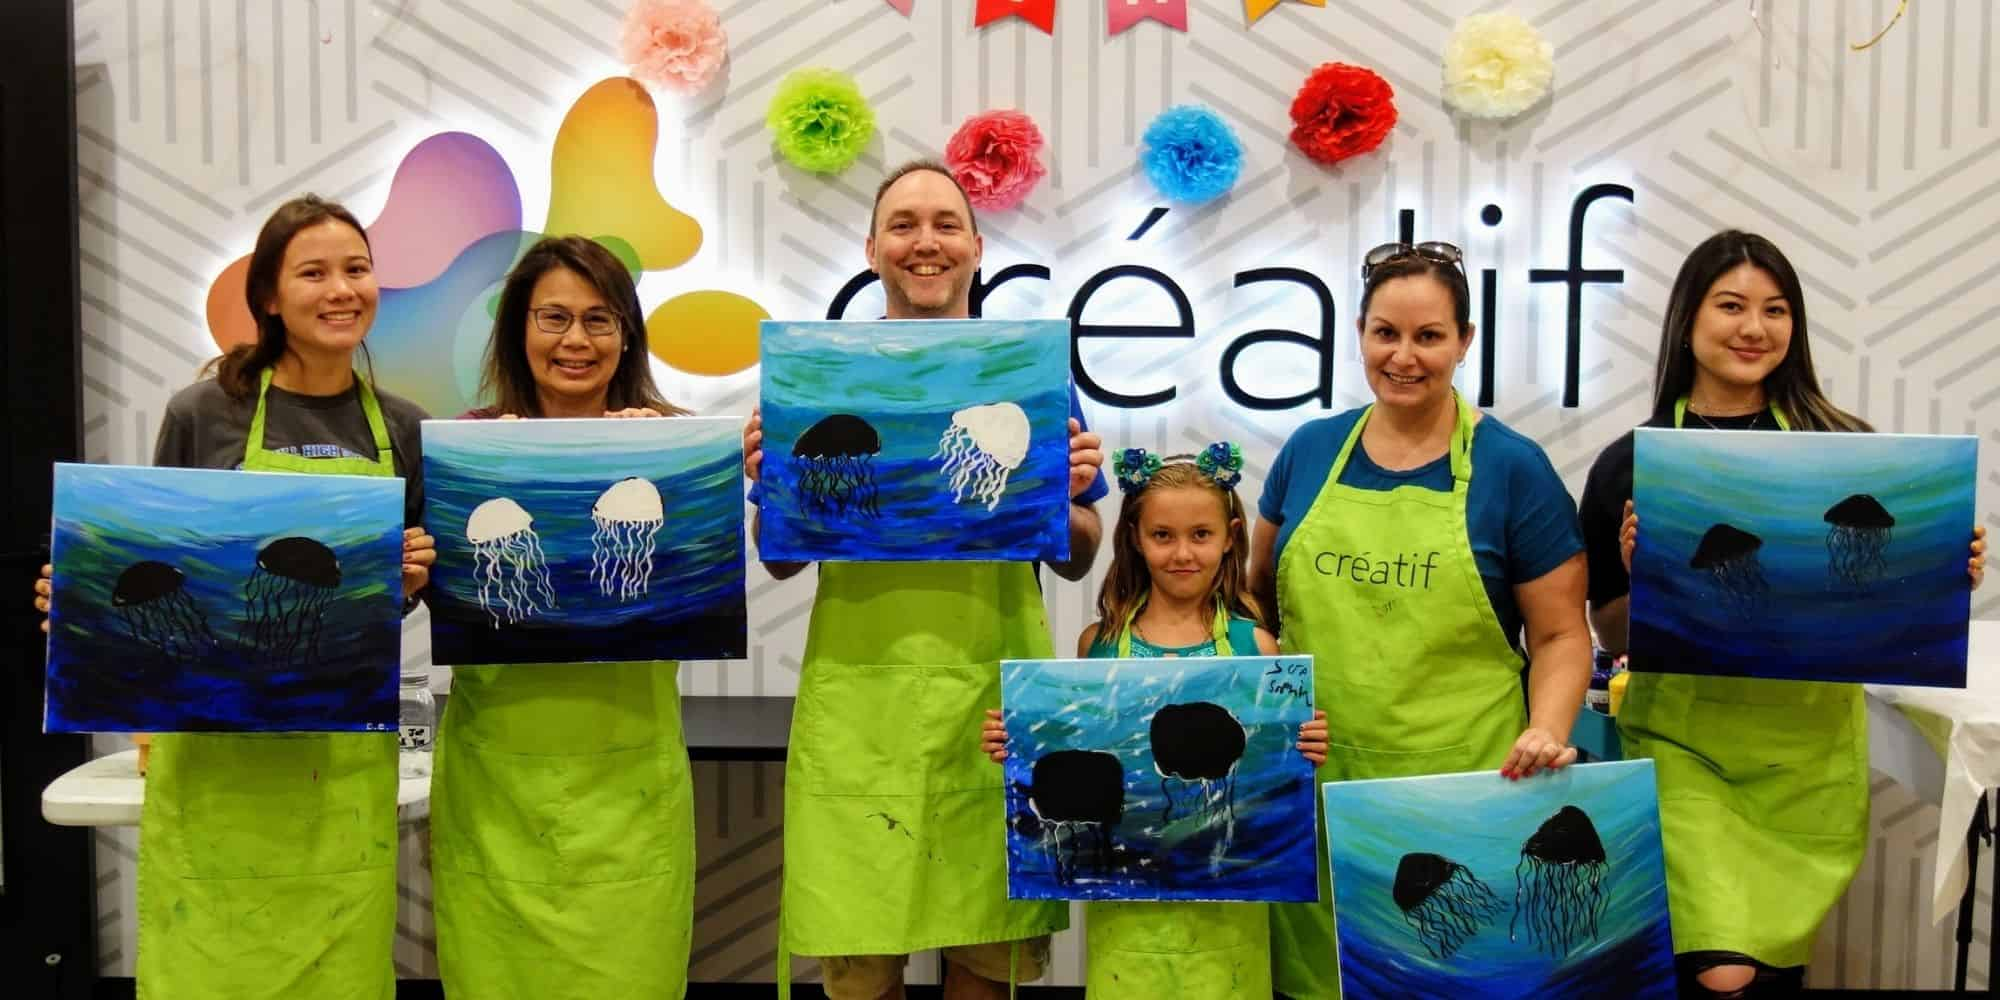 Paint Night with Friends Pleasanton California